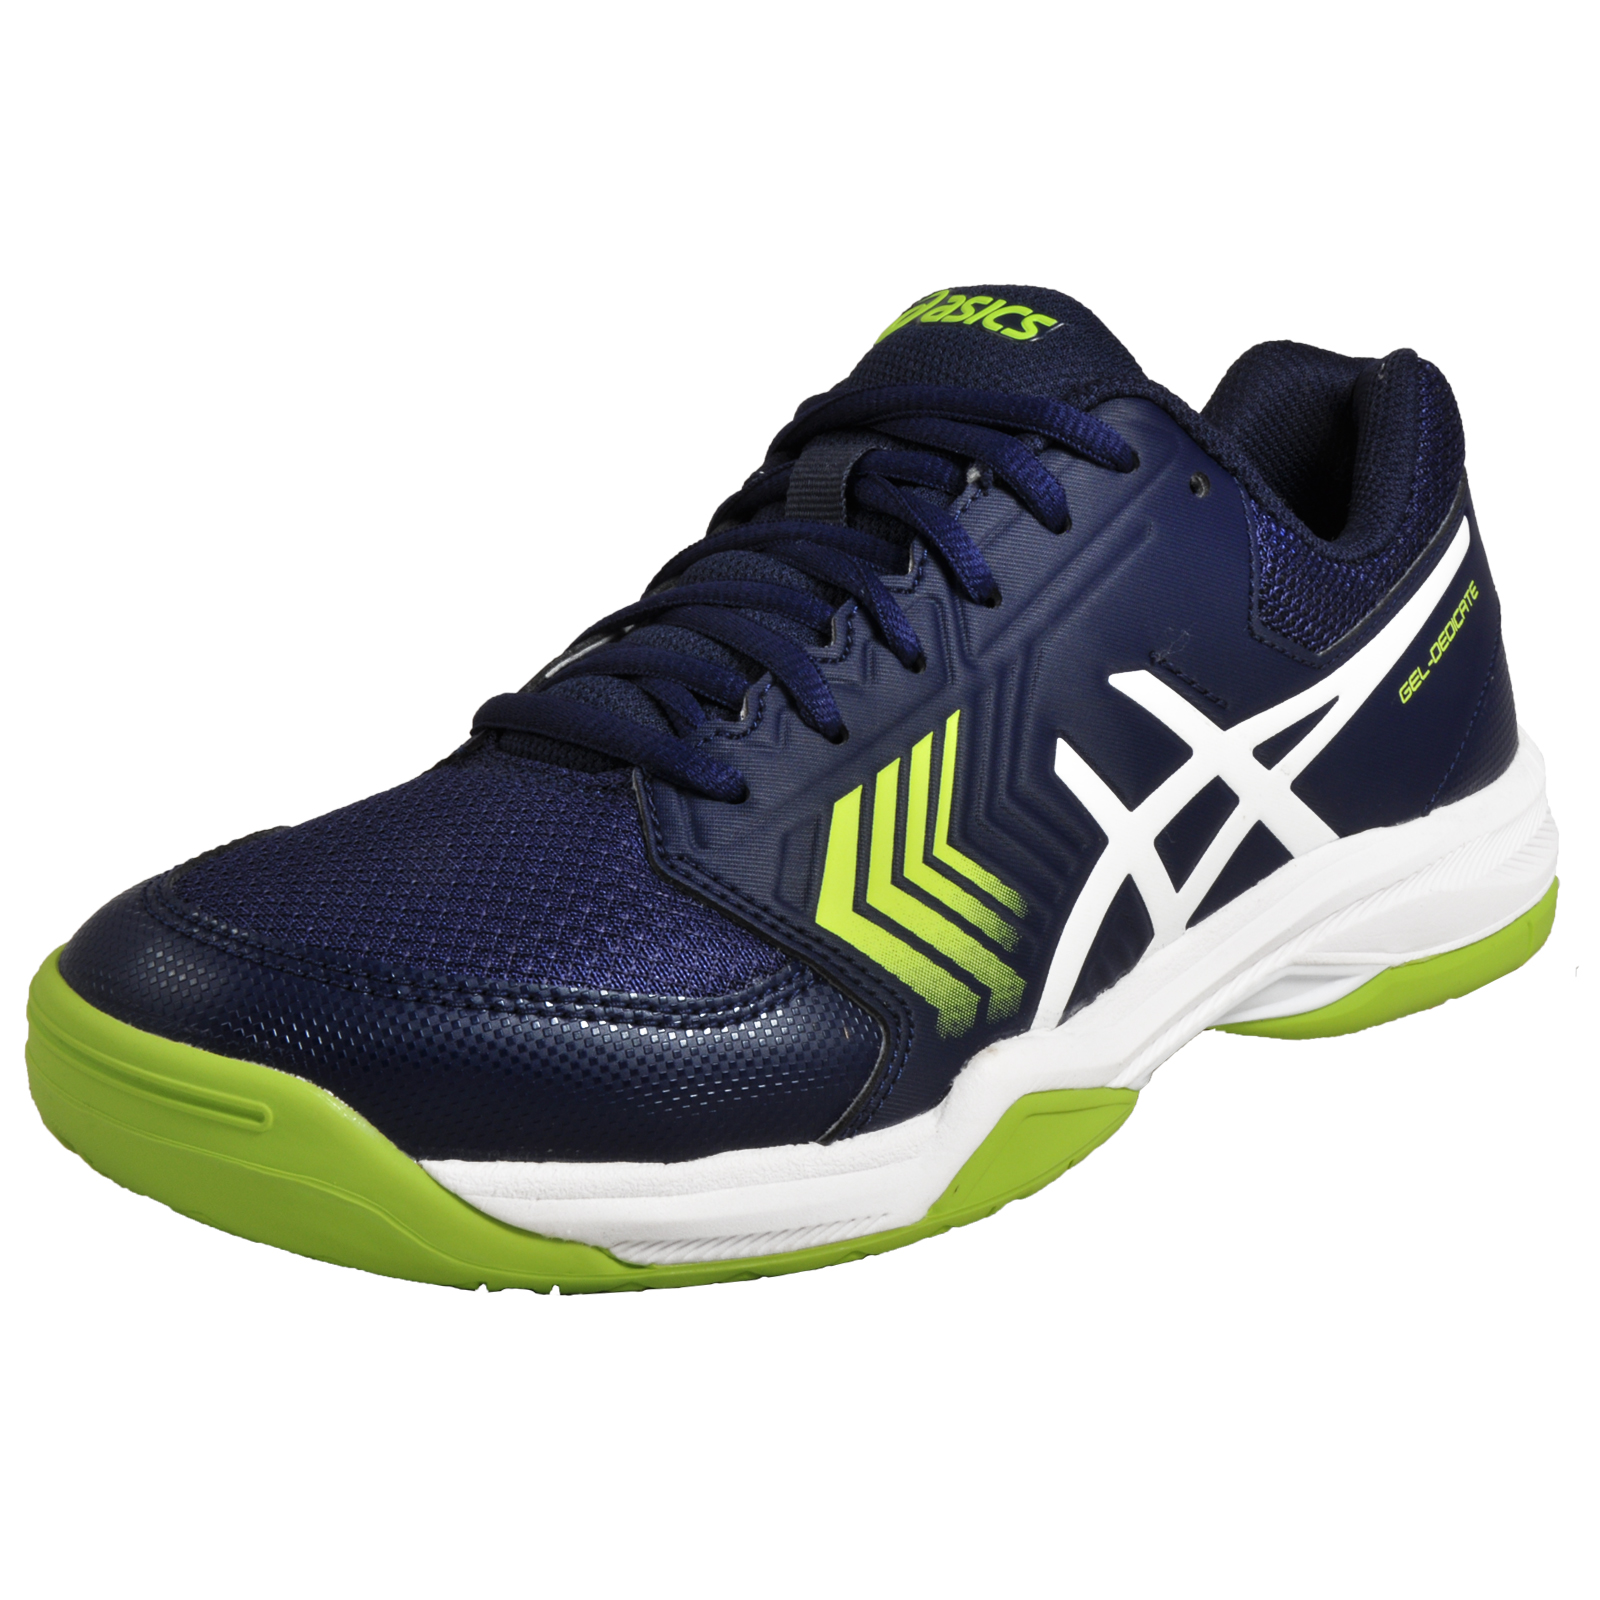 533440ef7fe4 Details about Asics Gel Dedicate 5 Mens Premium Performance Tennis Court  Trainers Blue